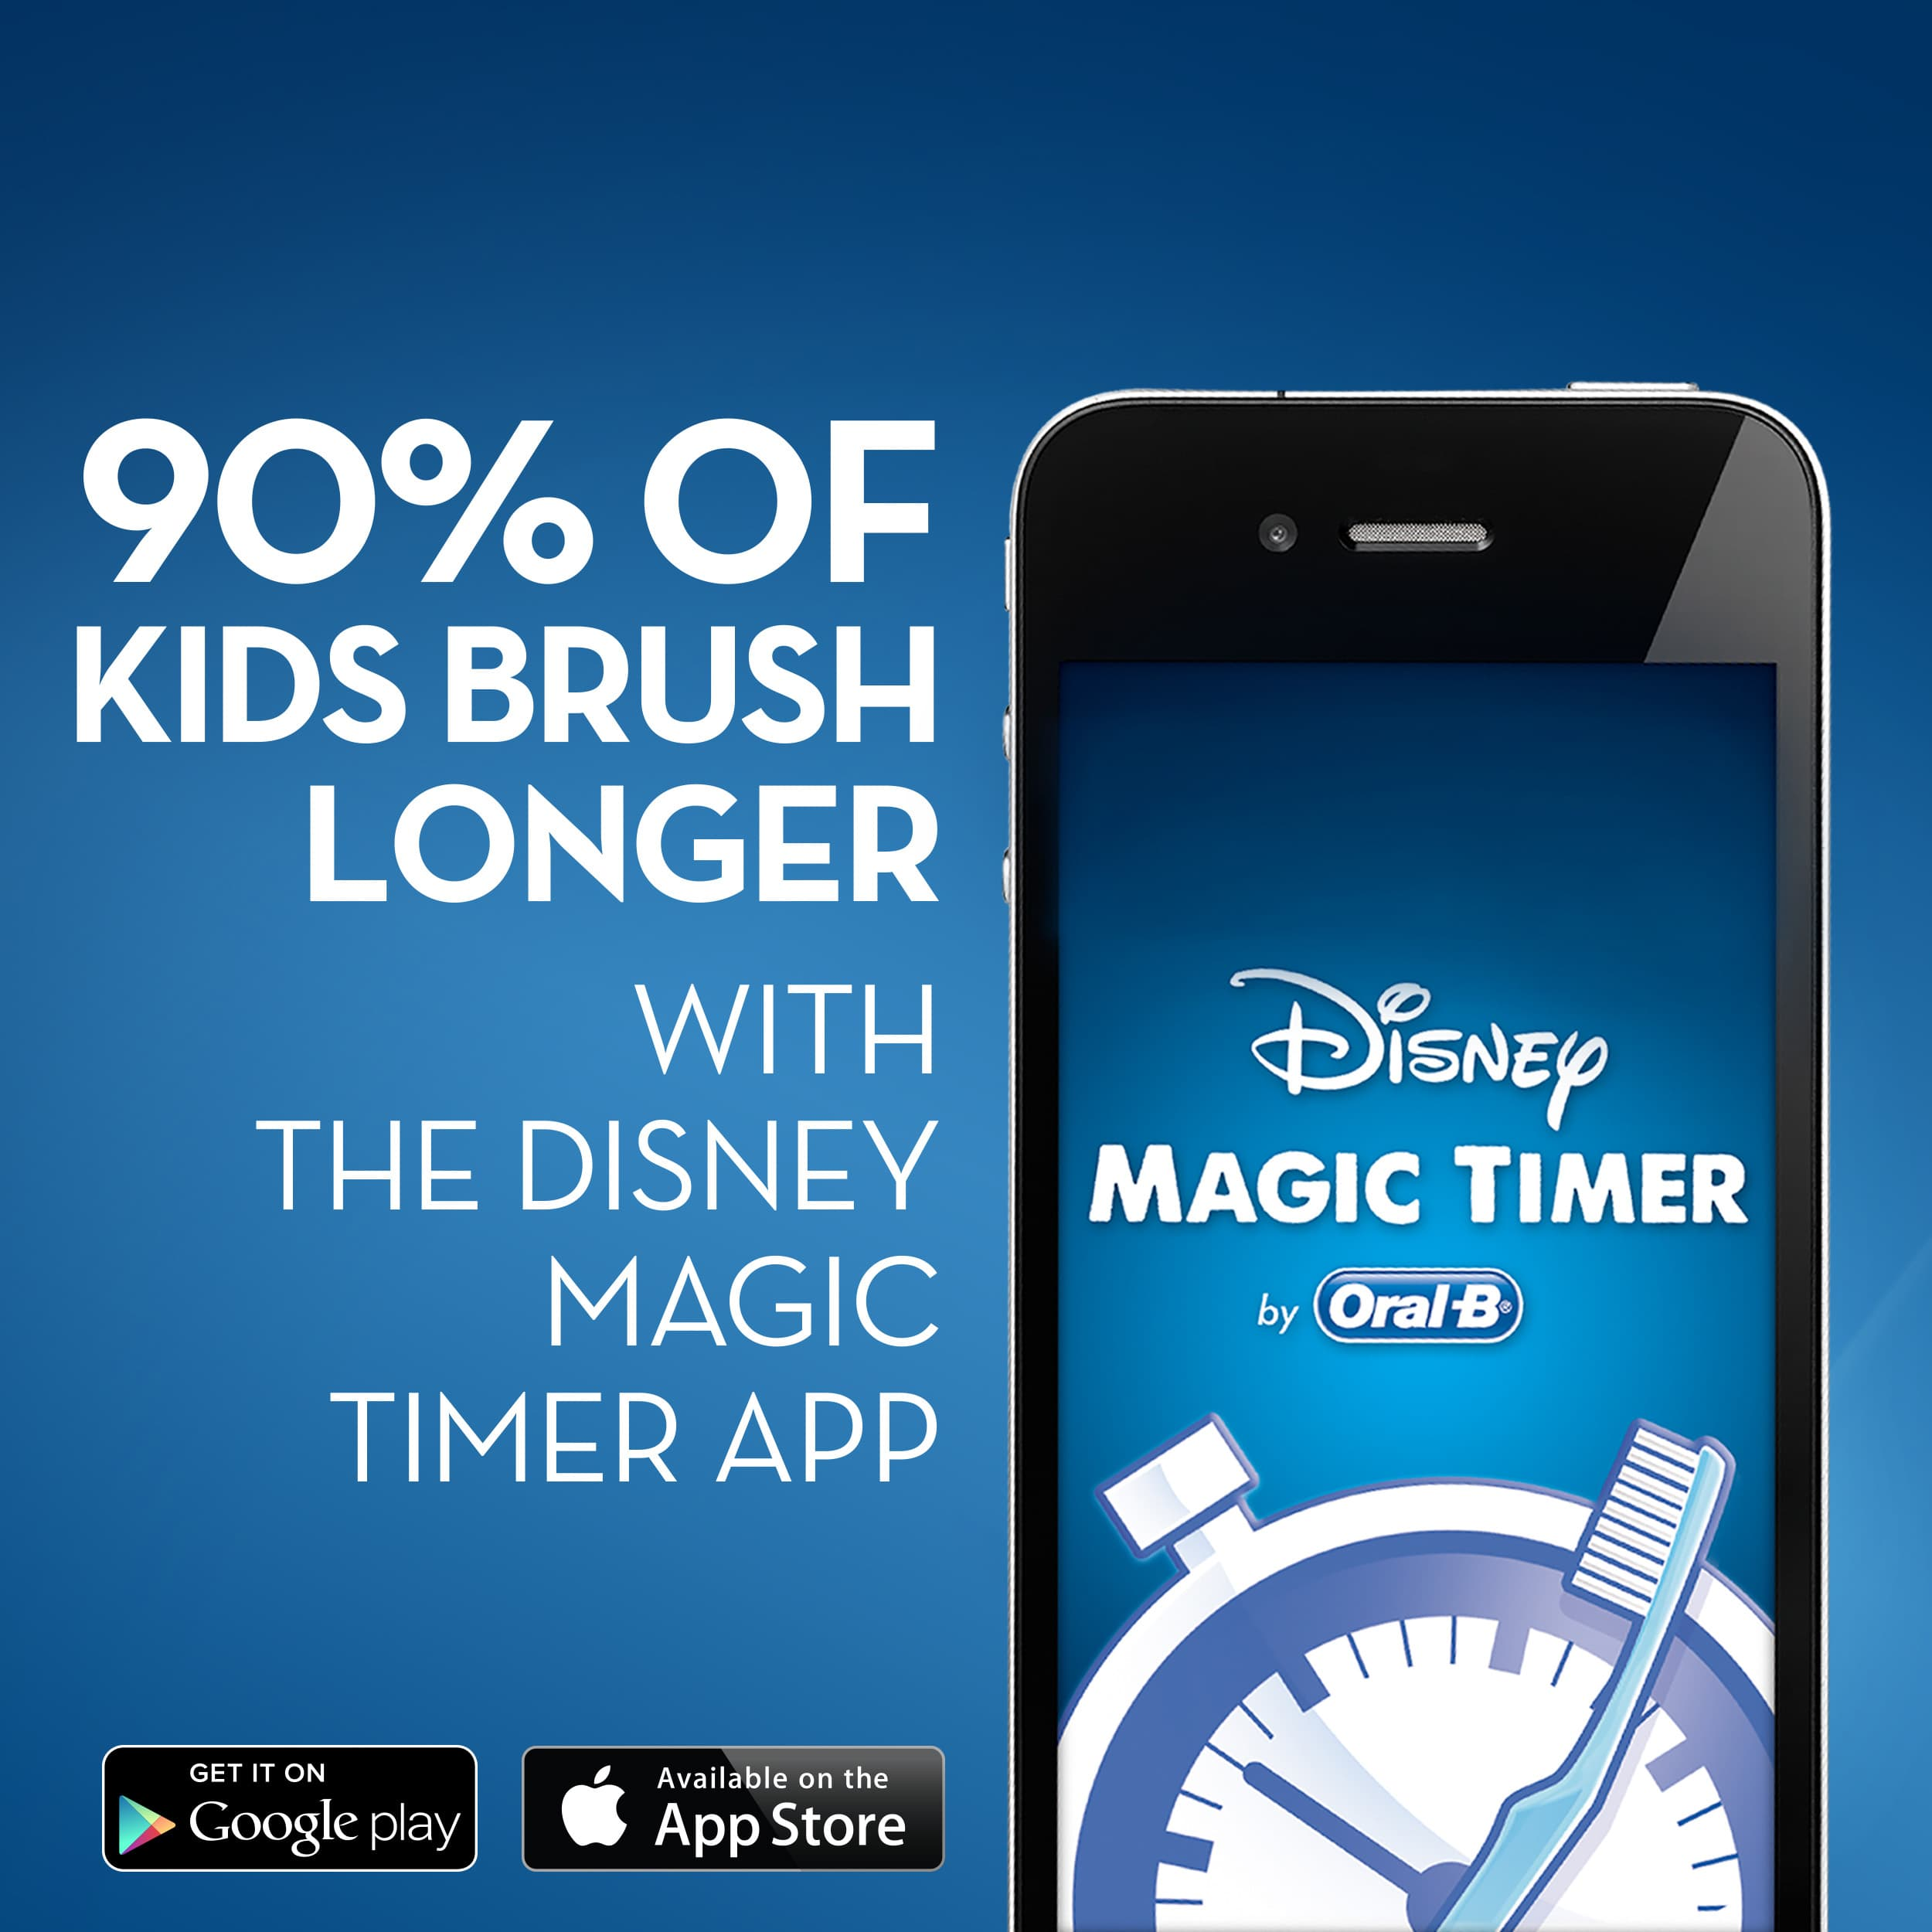 90% of kids brush longer with the Disney Magic Timer App